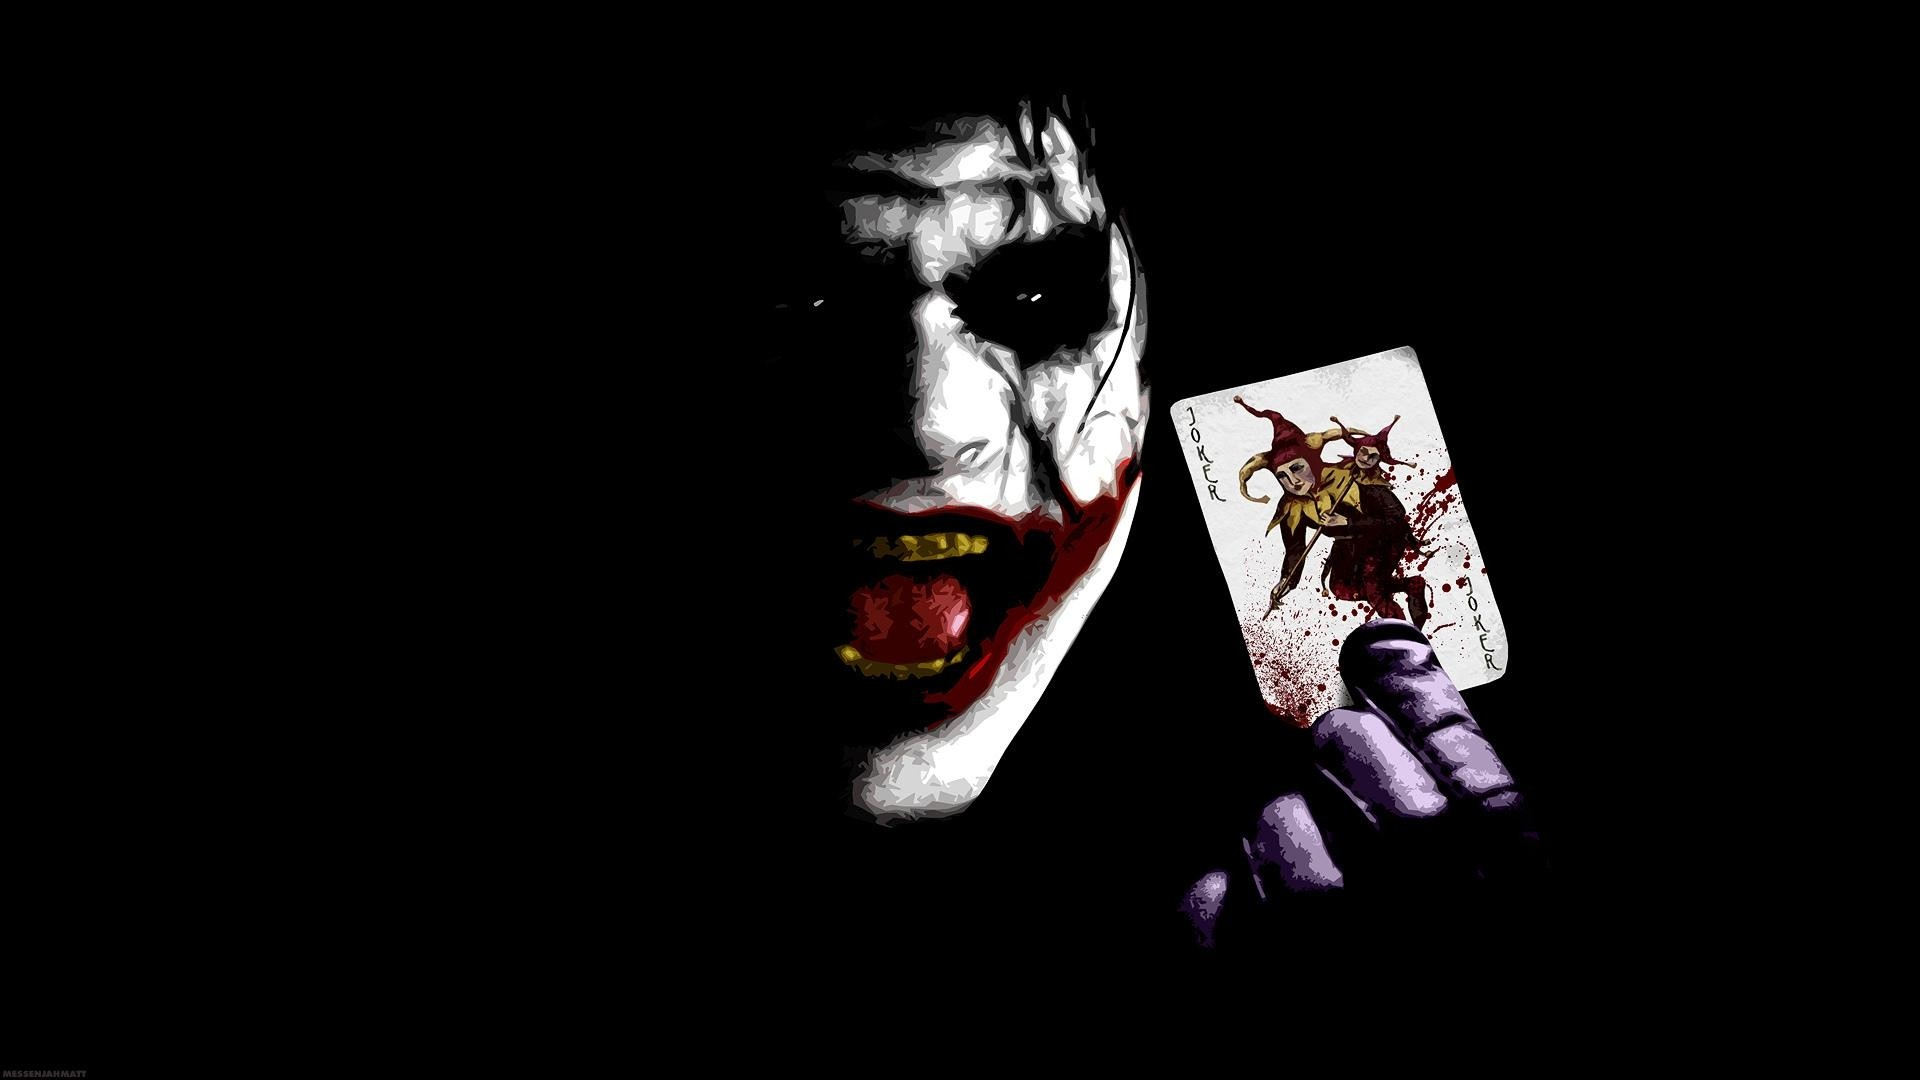 Joker Art HD Artist k Wallpapers Images Backgrounds